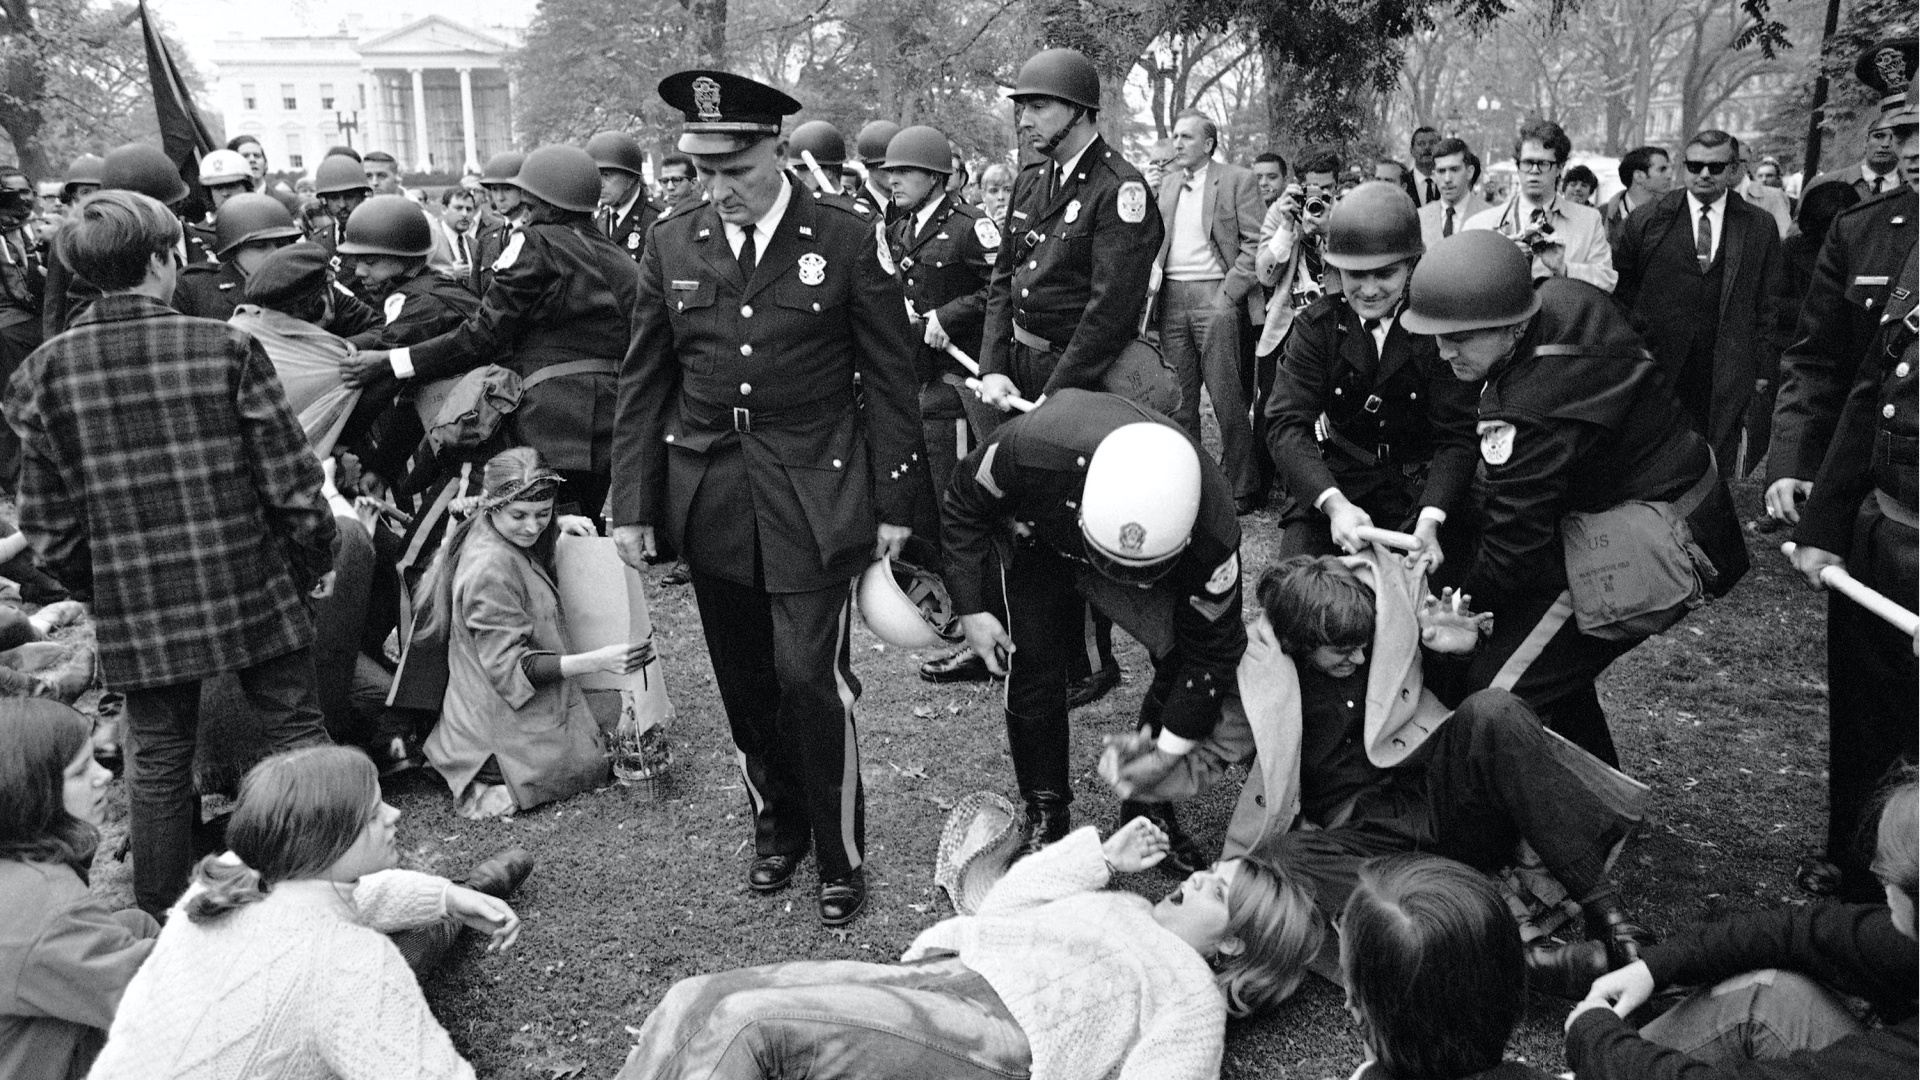 students and police clashing during protests in Lafayette Park in shadow of the white house in 1968